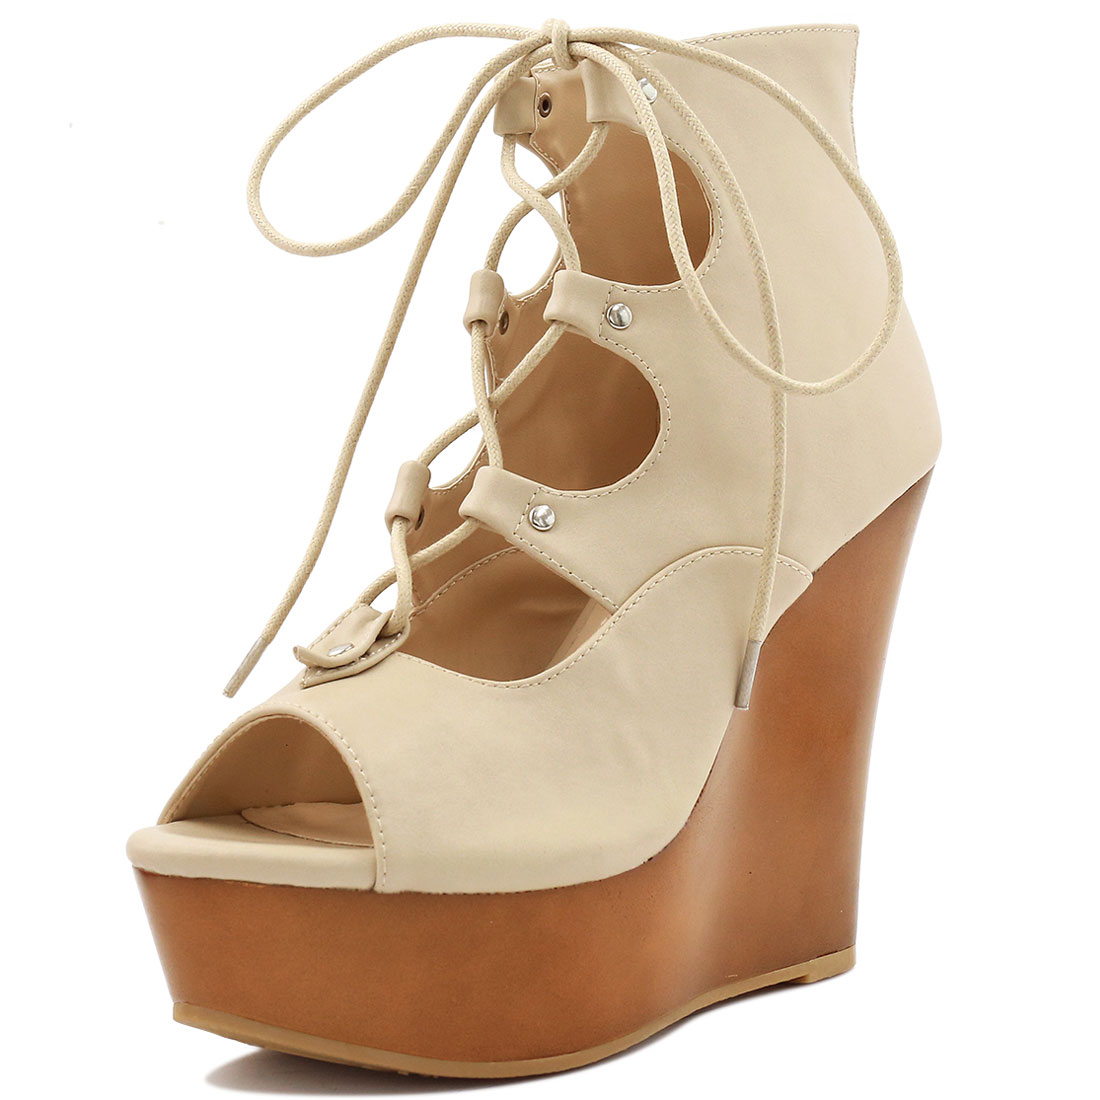 Woman Peep Toe Lace-Up Cutout Platform Wedge Sandals Beige US 10